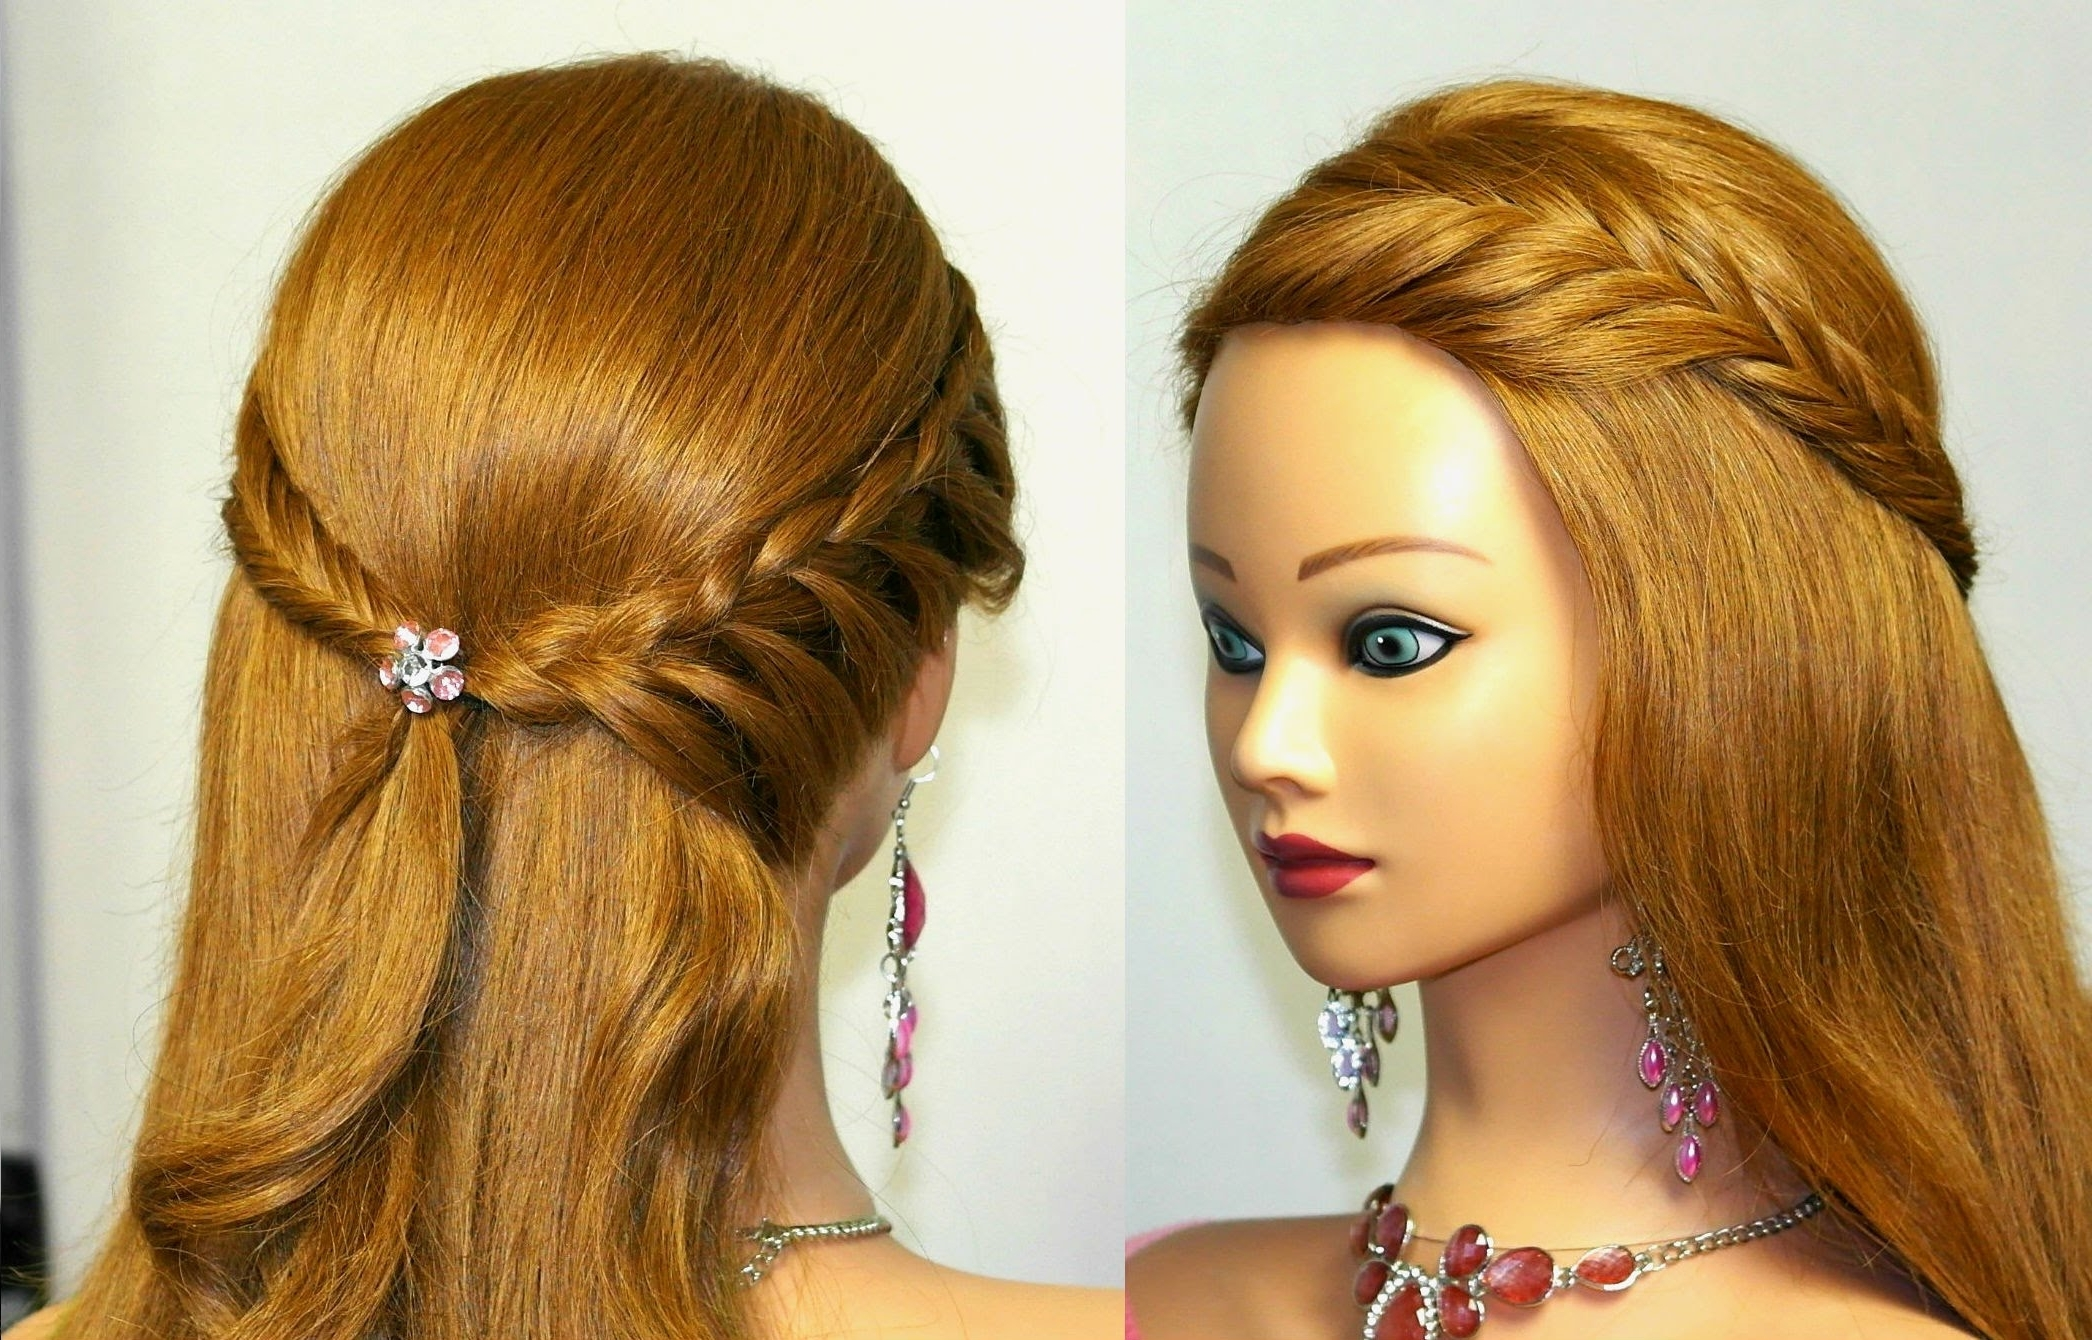 Cute Homecoming Hairstyles For Medium Length Hair – Hairstyle For For Homecoming Updos For Medium Length Hair (View 14 of 15)